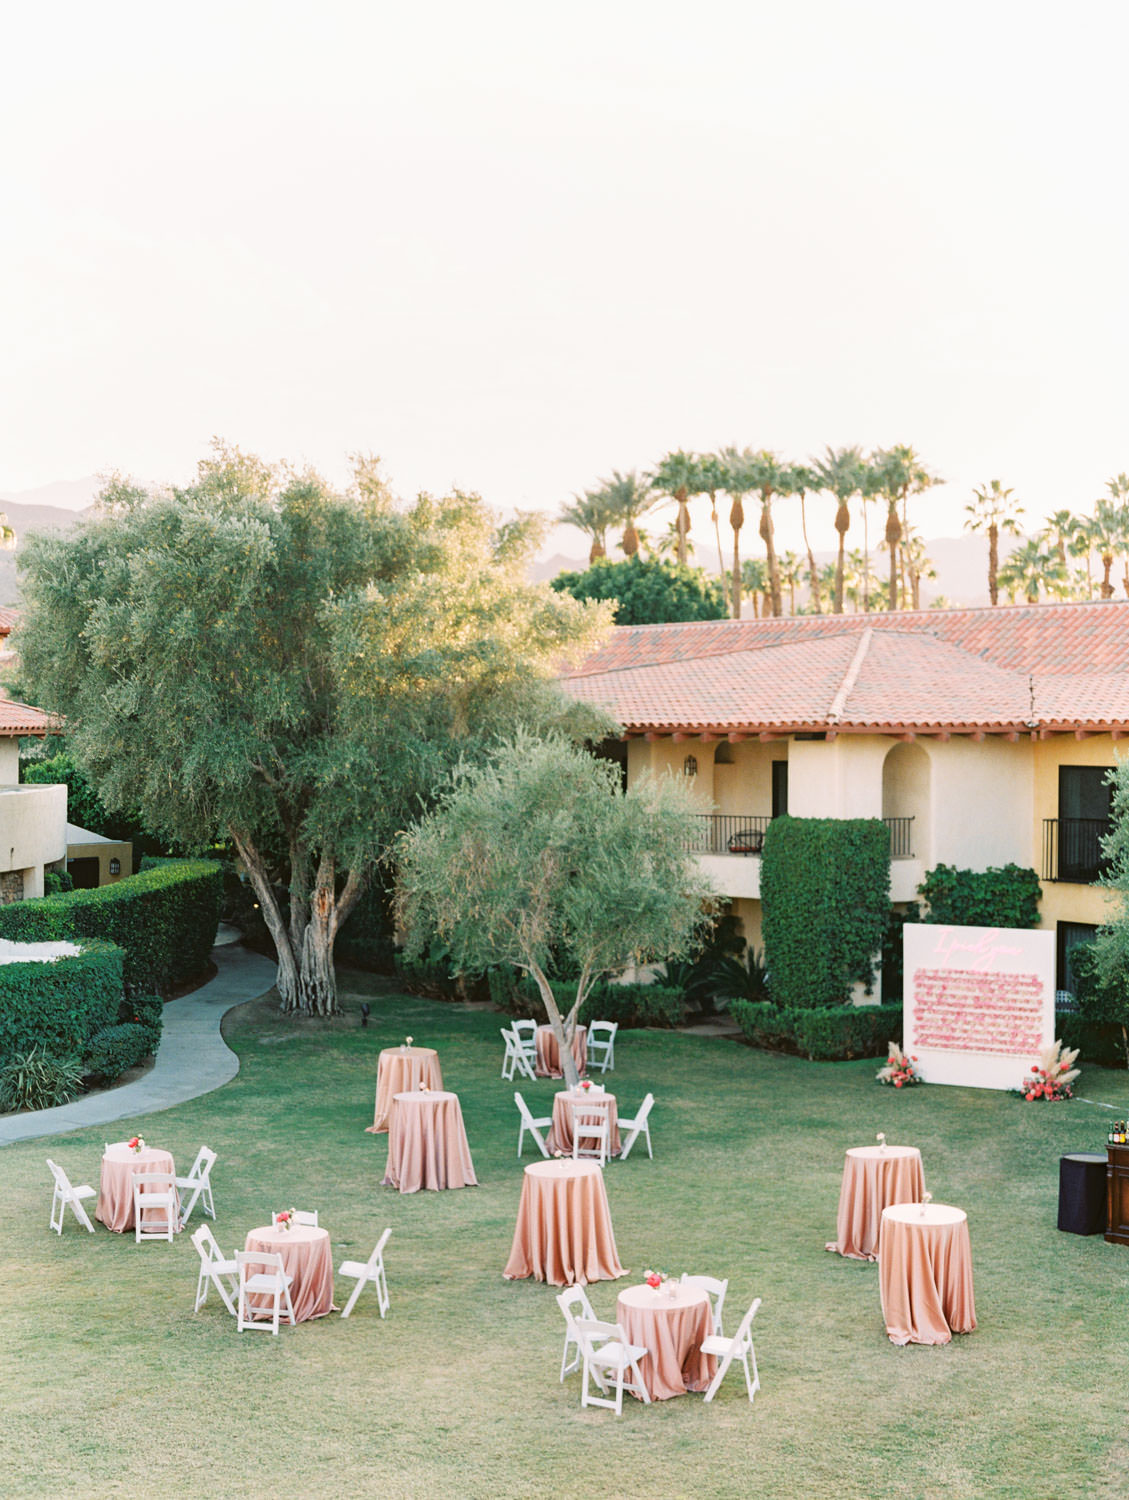 Cocktail hour on a grassy lawn with pink linens on tables. Miramonte Resort wedding. Film photography by Cavin Elizabeth.